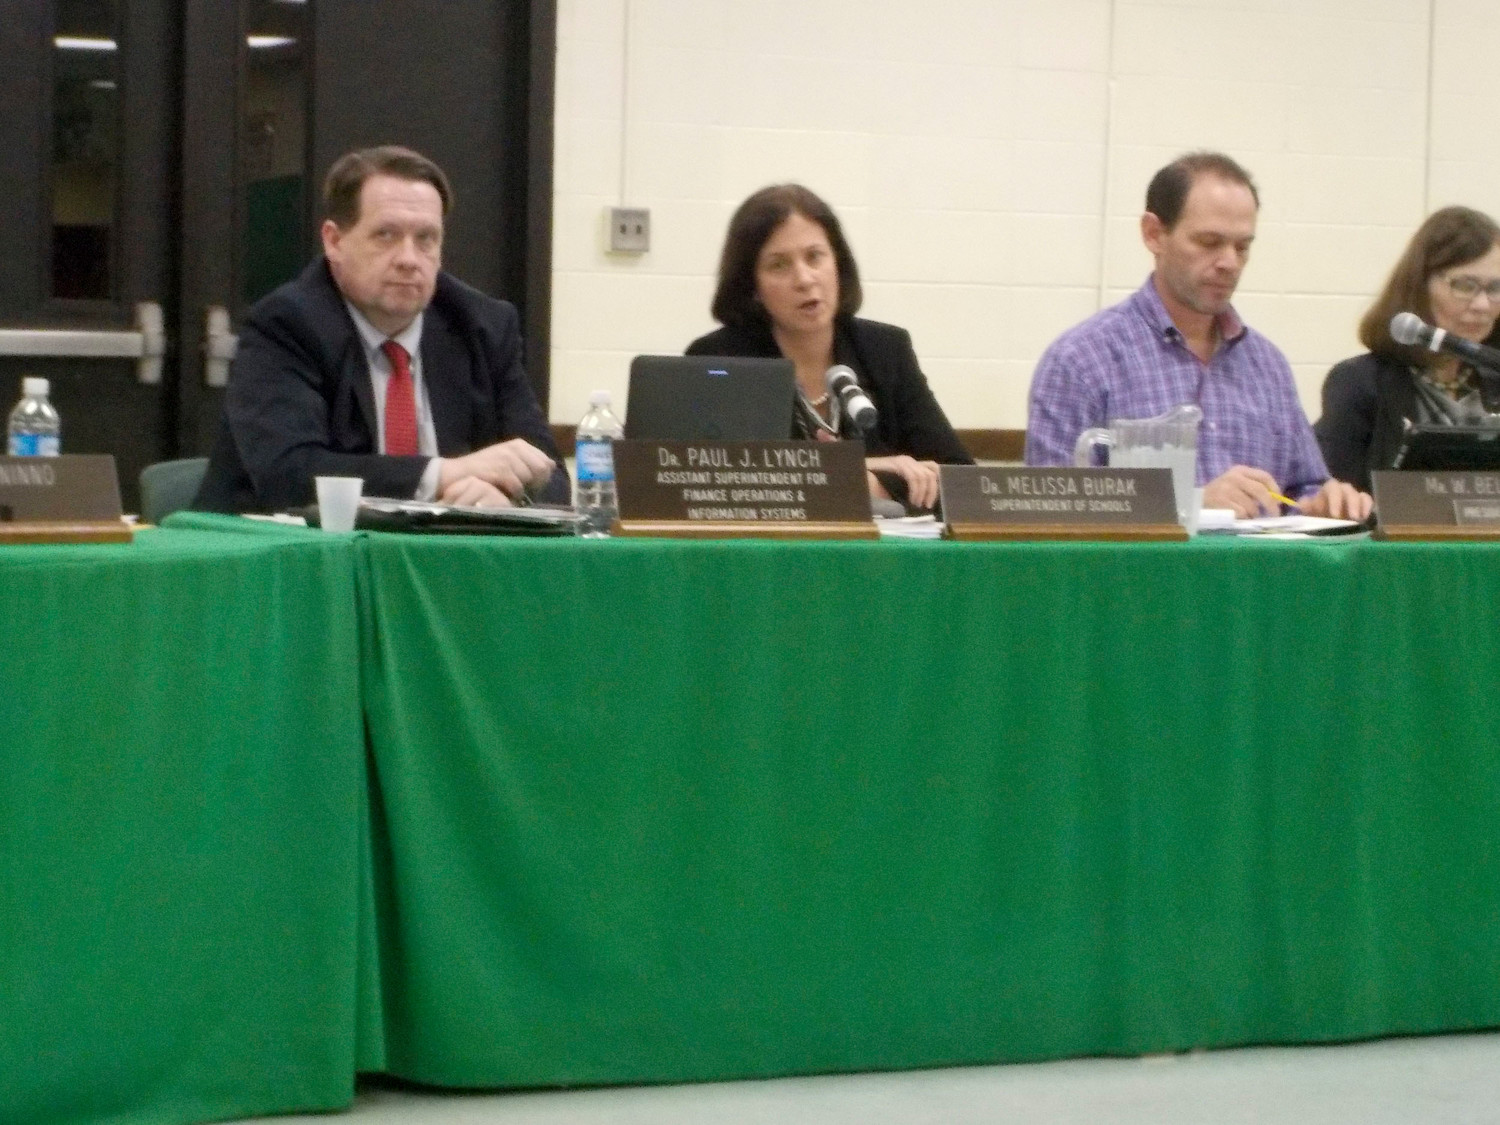 Paul Lynch, left, Lynbrook's assistant superintendent of finance, operations and information systems, presented the district's smart bond proposal in December 2016. Superintendent Dr. Melissa Burak, second from left, wrote a letter to the State Education Department last month after the school shooting in Parkland, Fla., because the nearly $893,000 plan — which focuses on school safety initiatives — has yet to be approved.